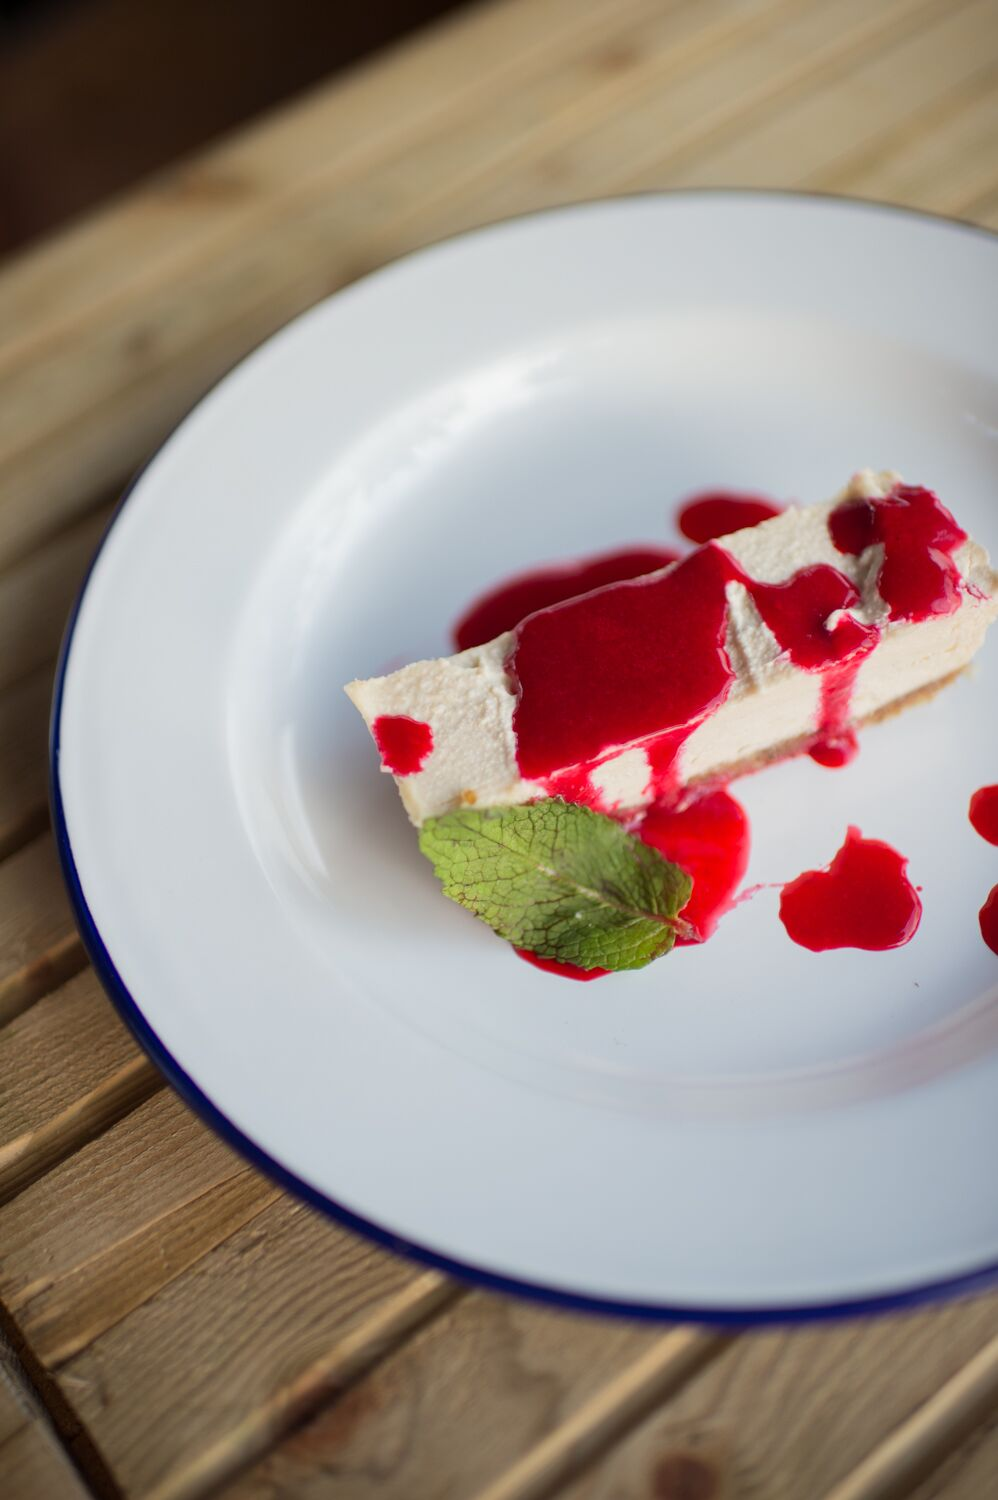 Vegan lemon cheesecake, raspberry coulis